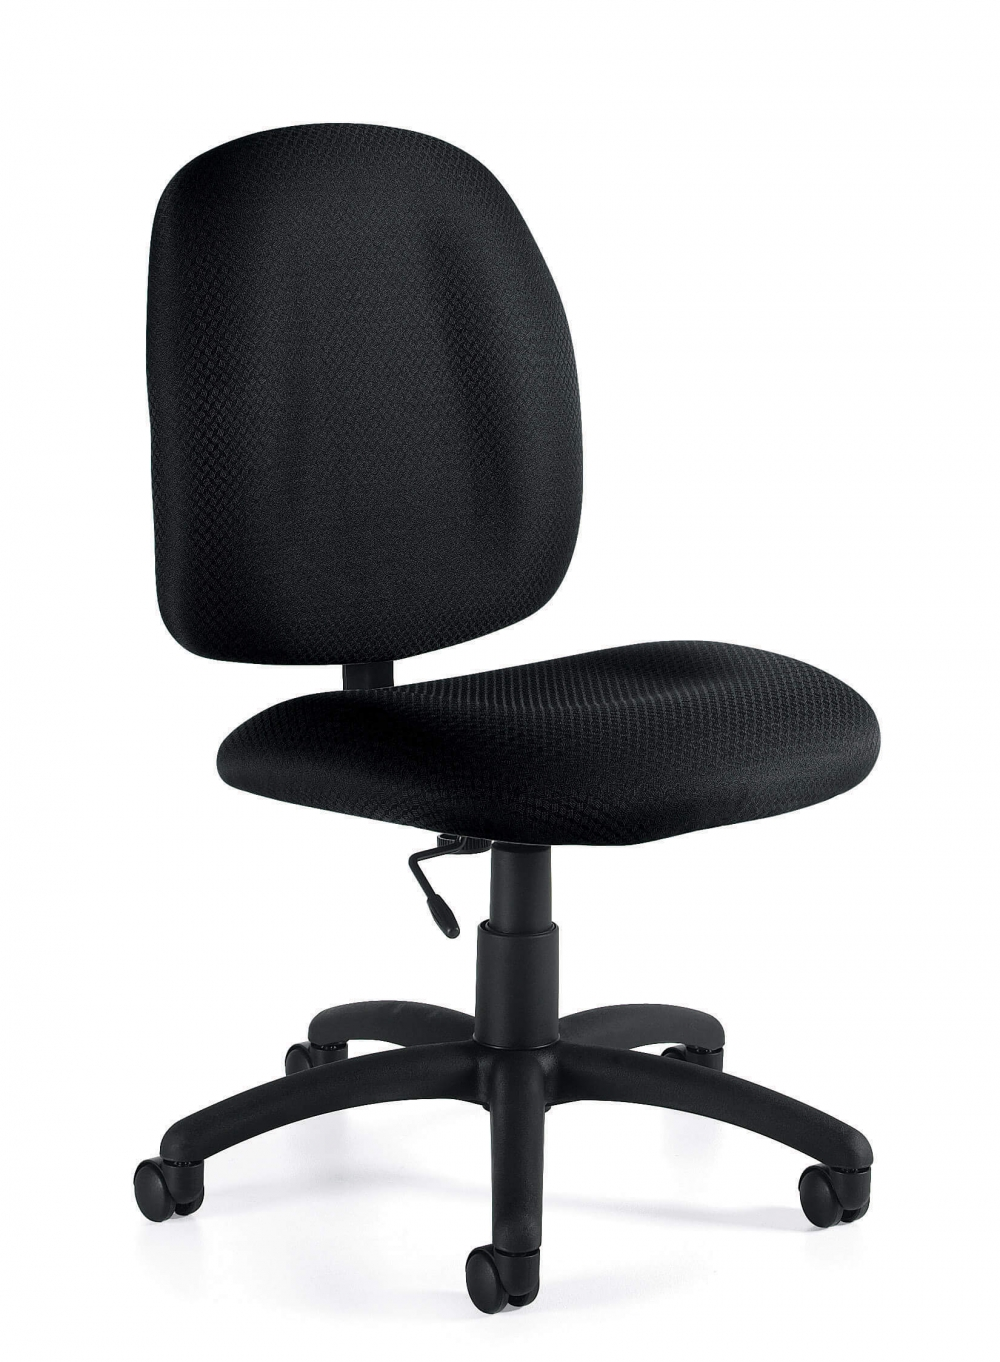 Discount Chairs Under 150 Jessi Cheap Computer Chairs